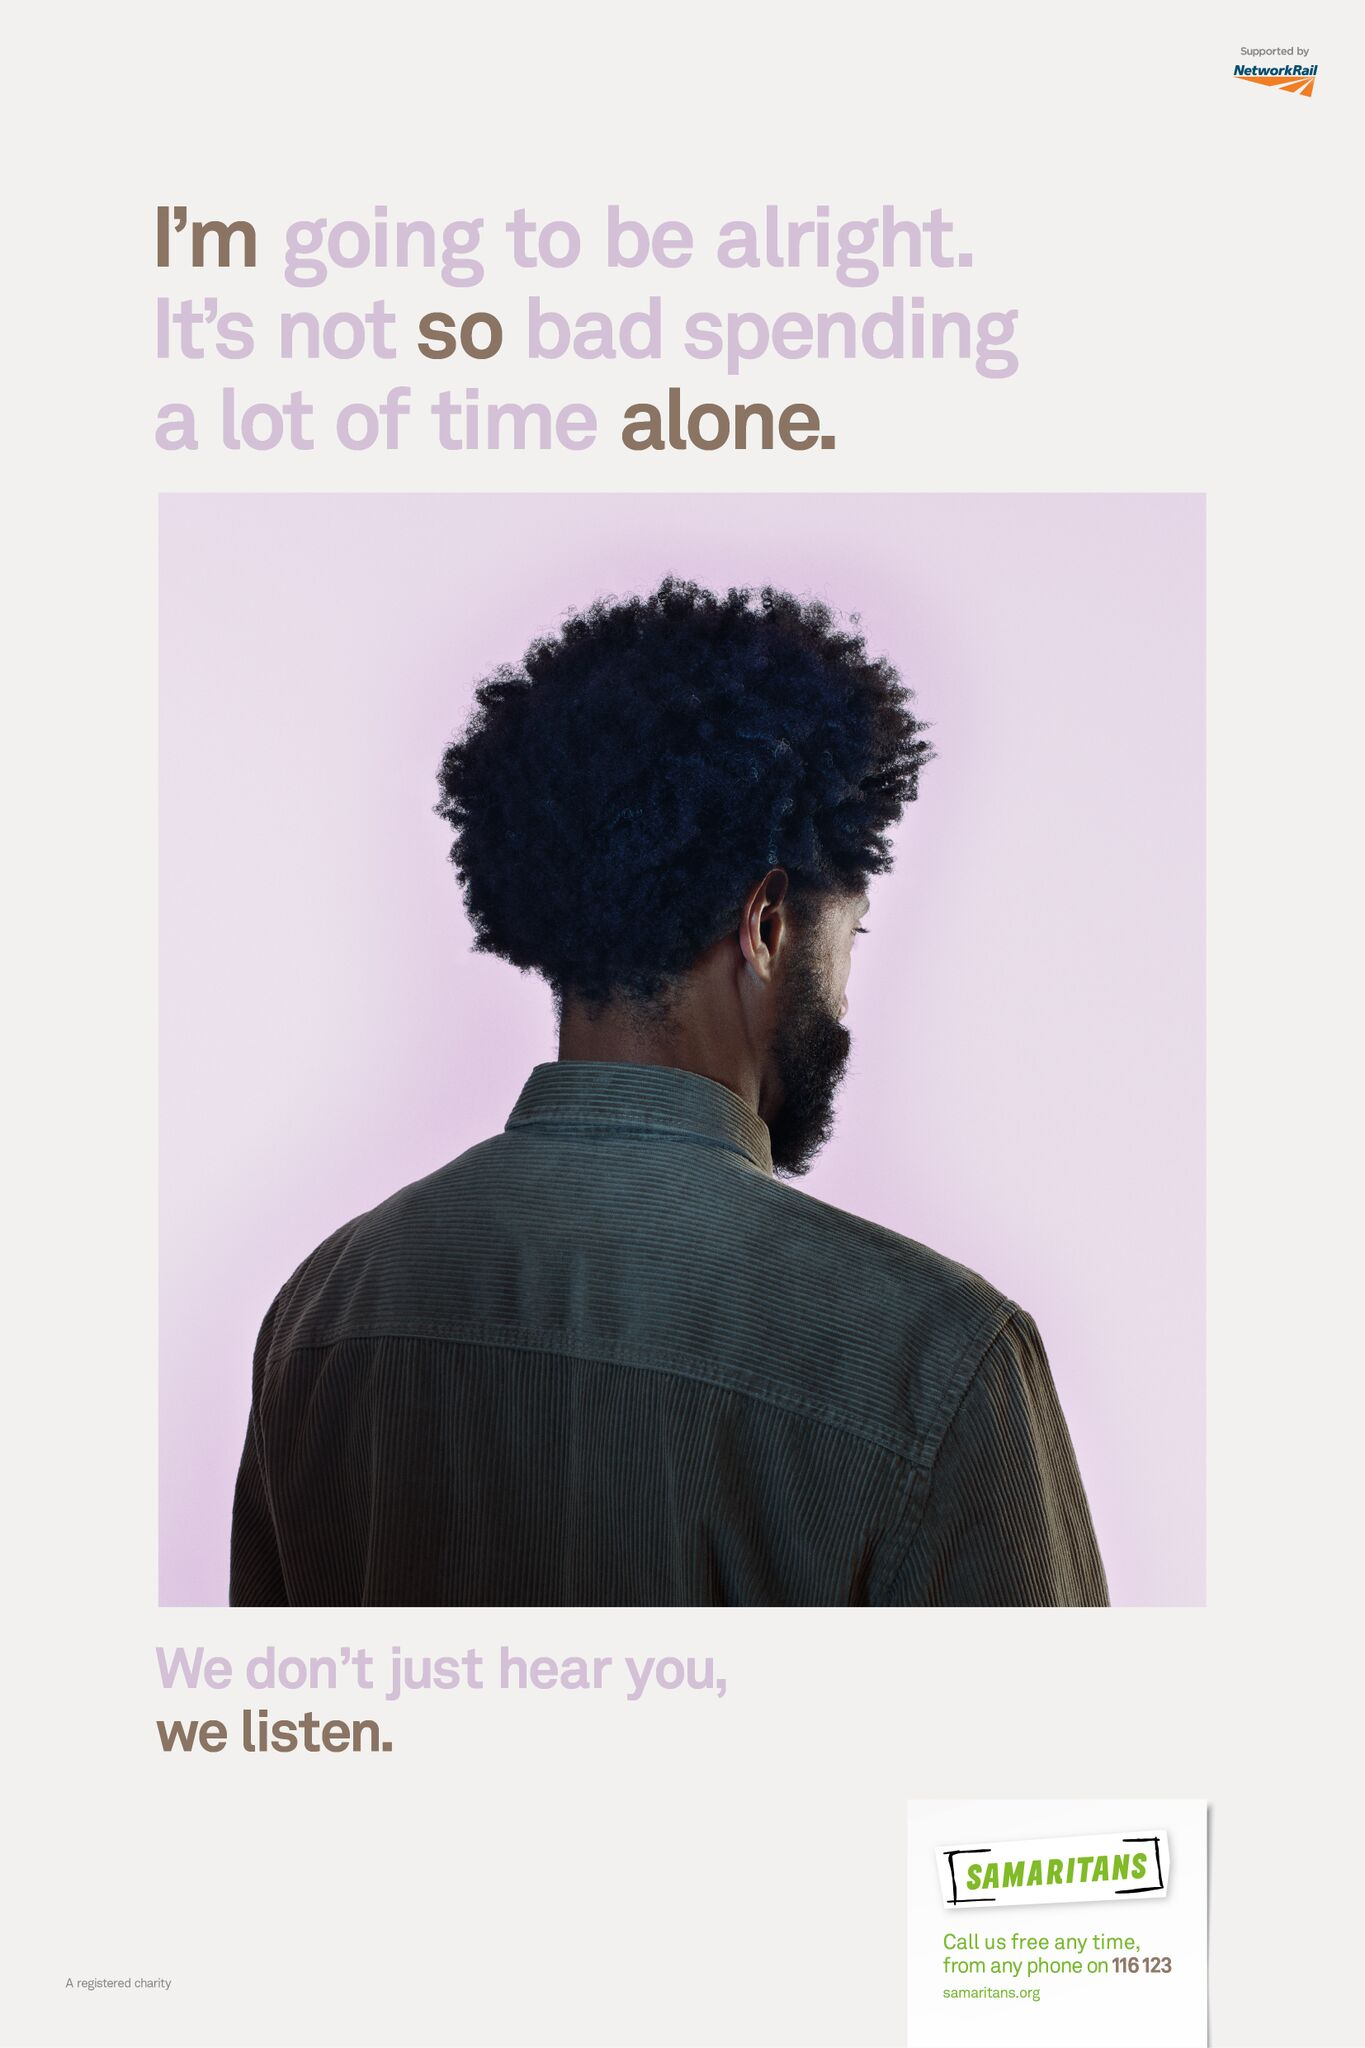 MullenLowe's We Listen campaign for the Samaritans, shot by Nadav Kander